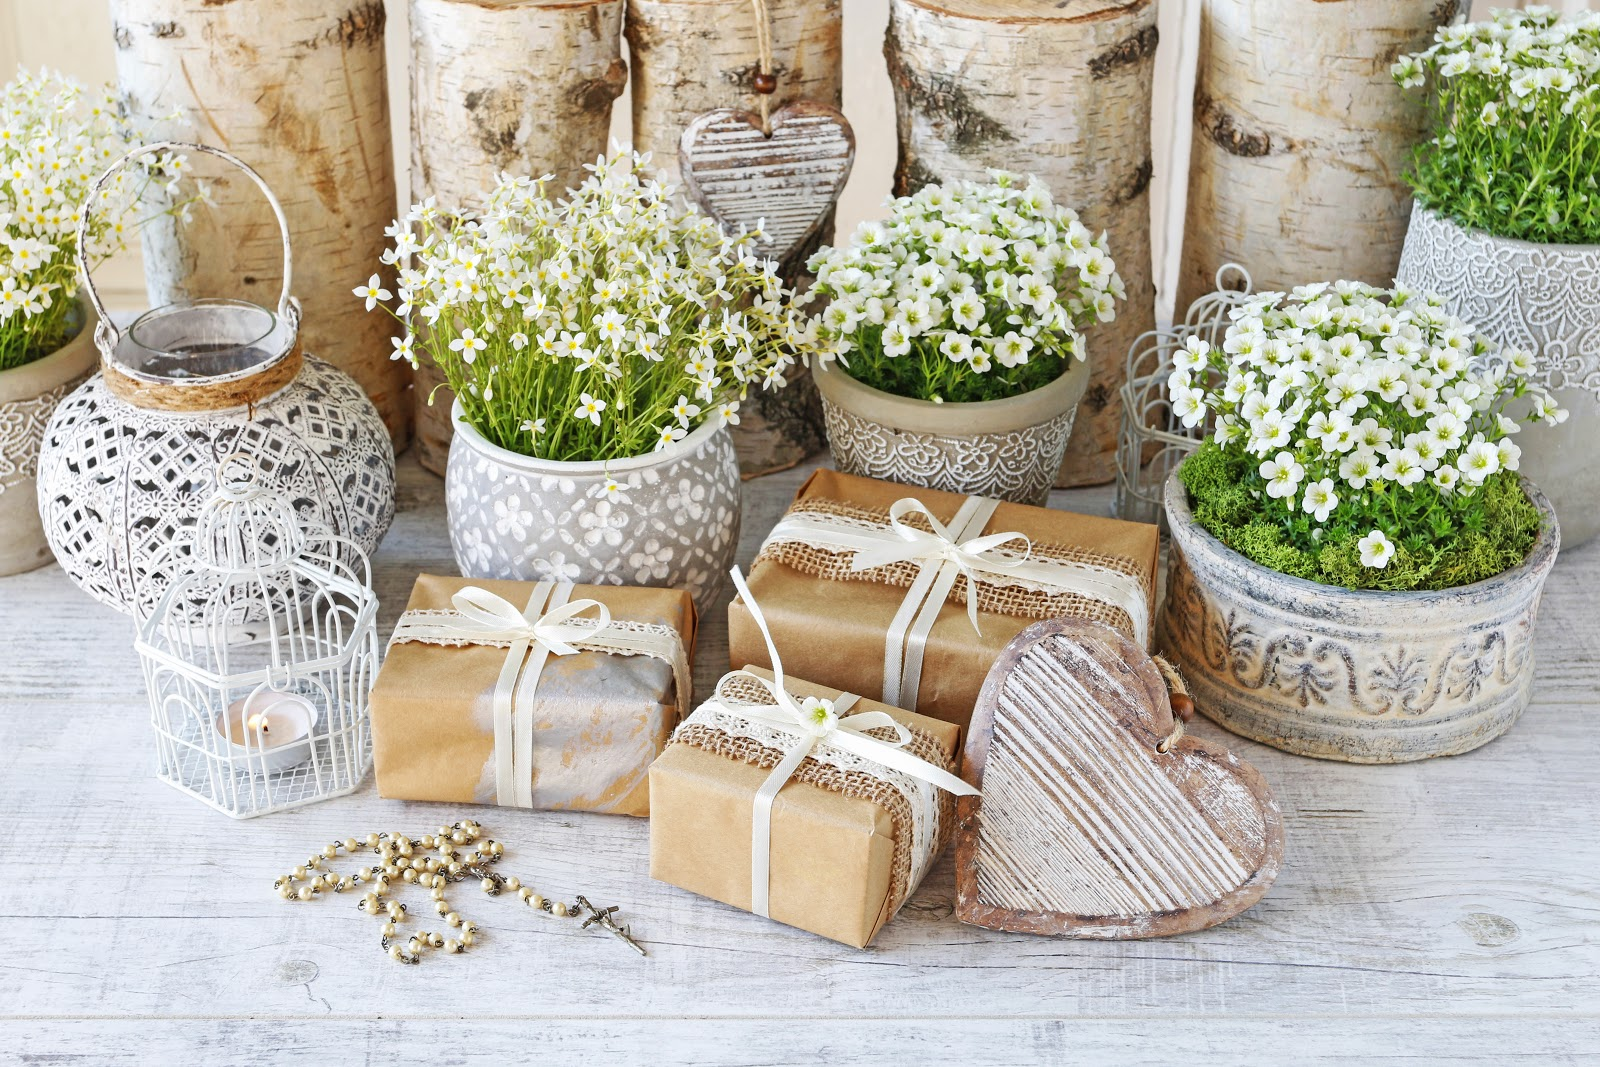 Wedding wishes: A table of wedding gifts and decorations